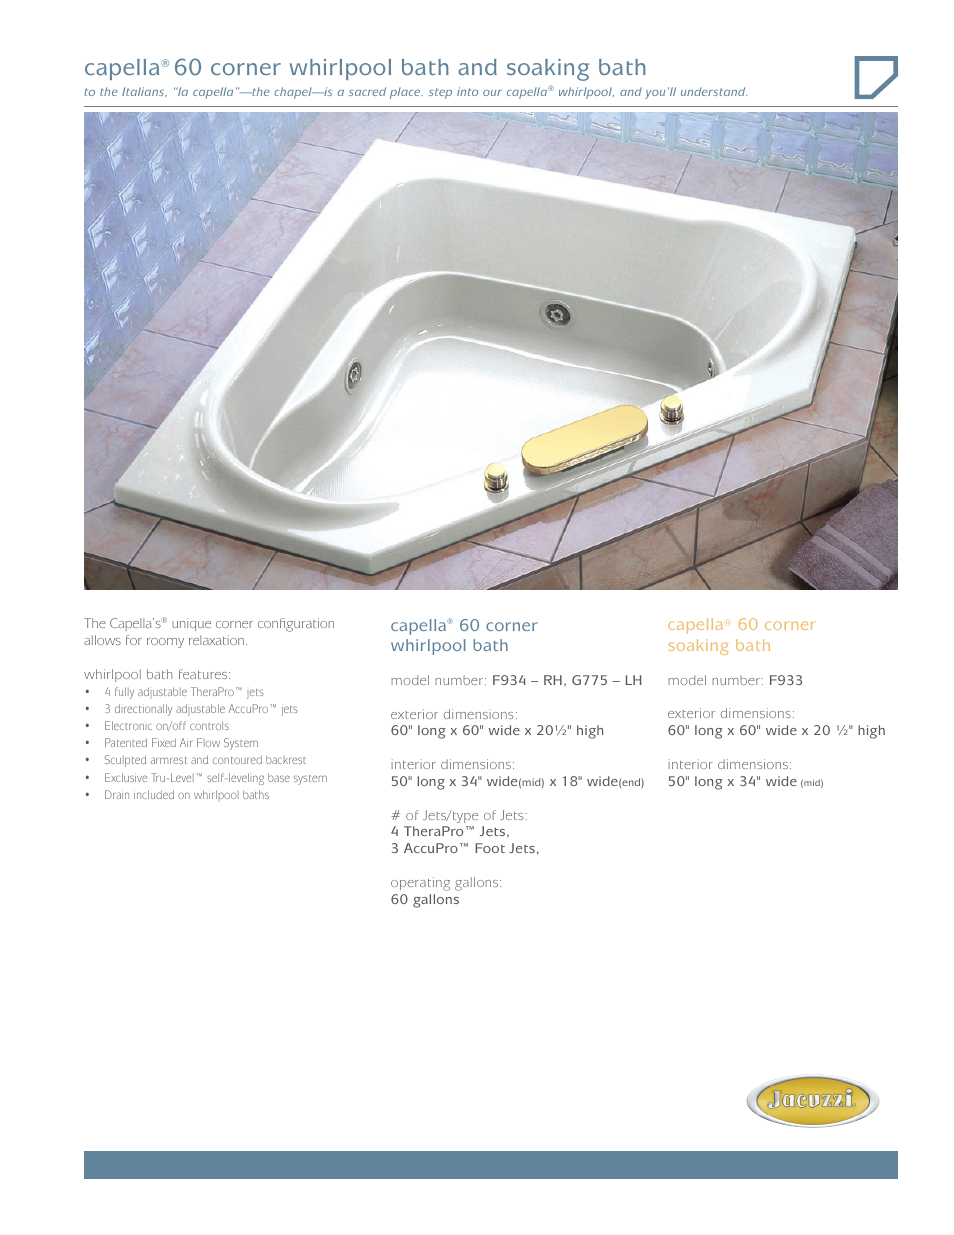 Jacuzzi Capella Whirlpool Bath G775 LH User Manual | 2 pages | Also ...